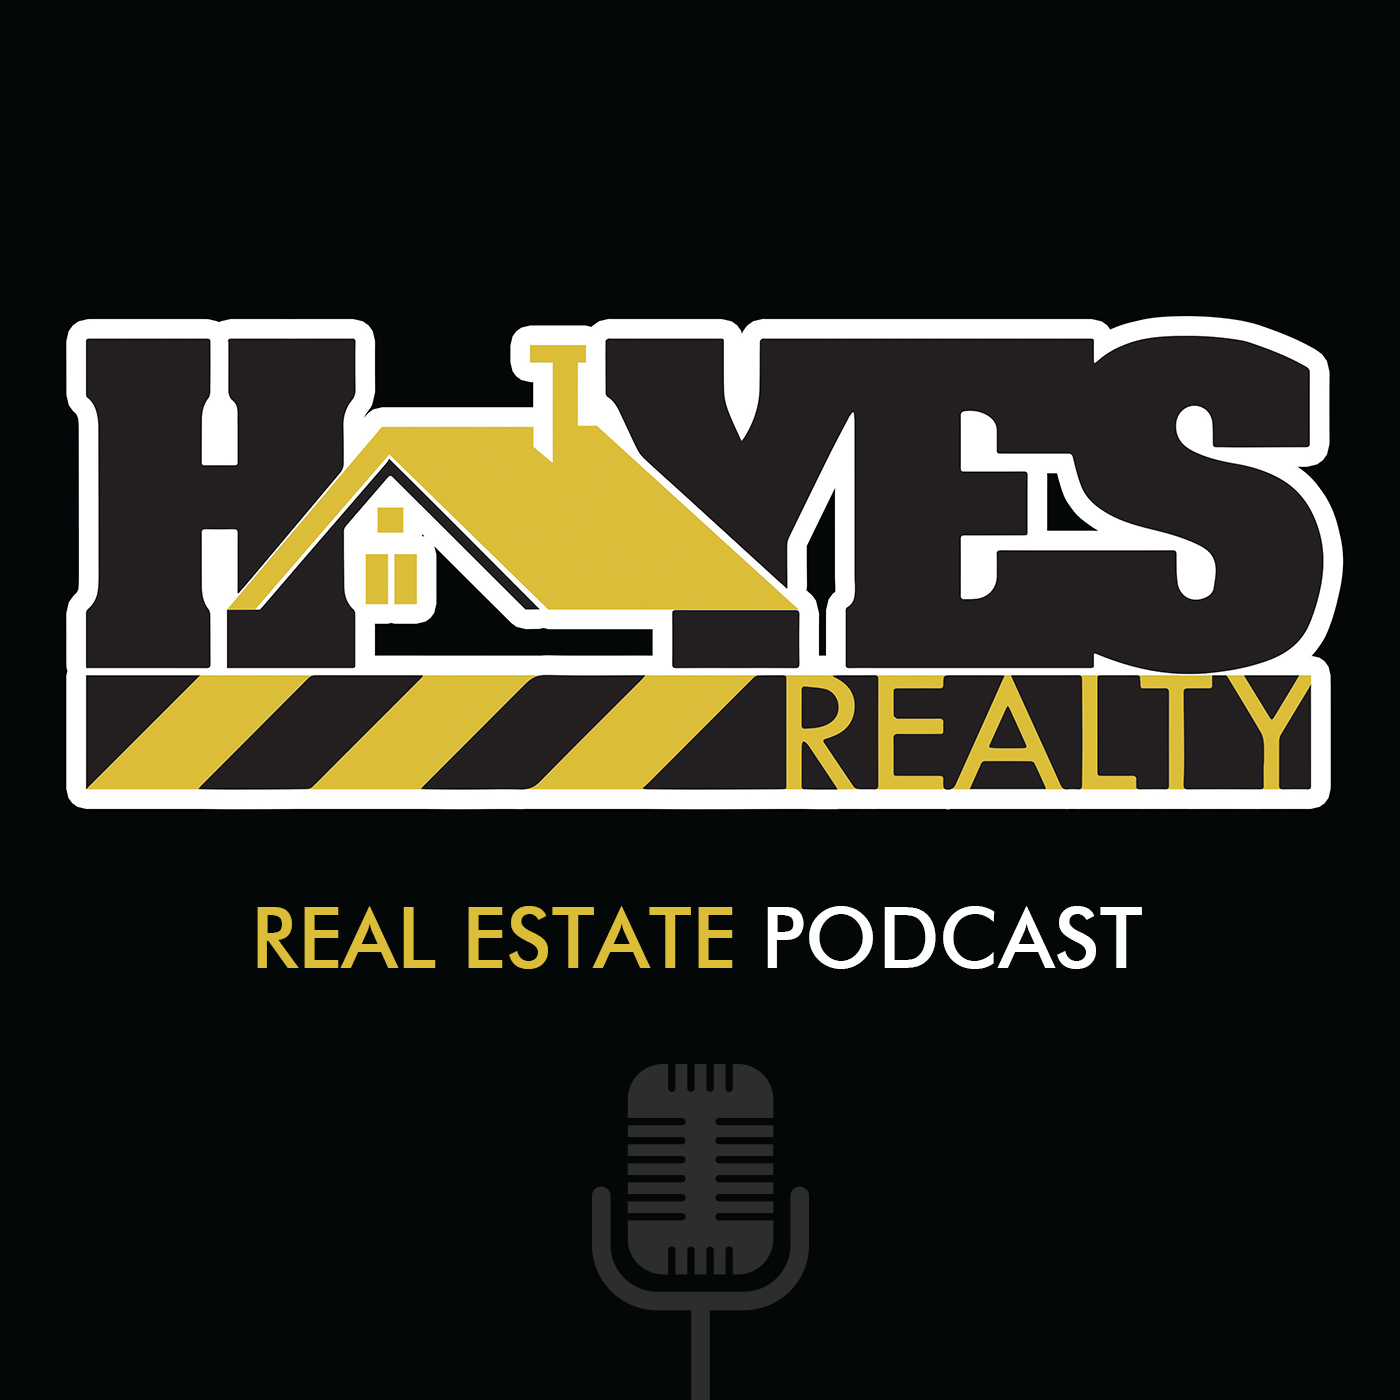 Hayes Realty Real Estate  Podcast show art